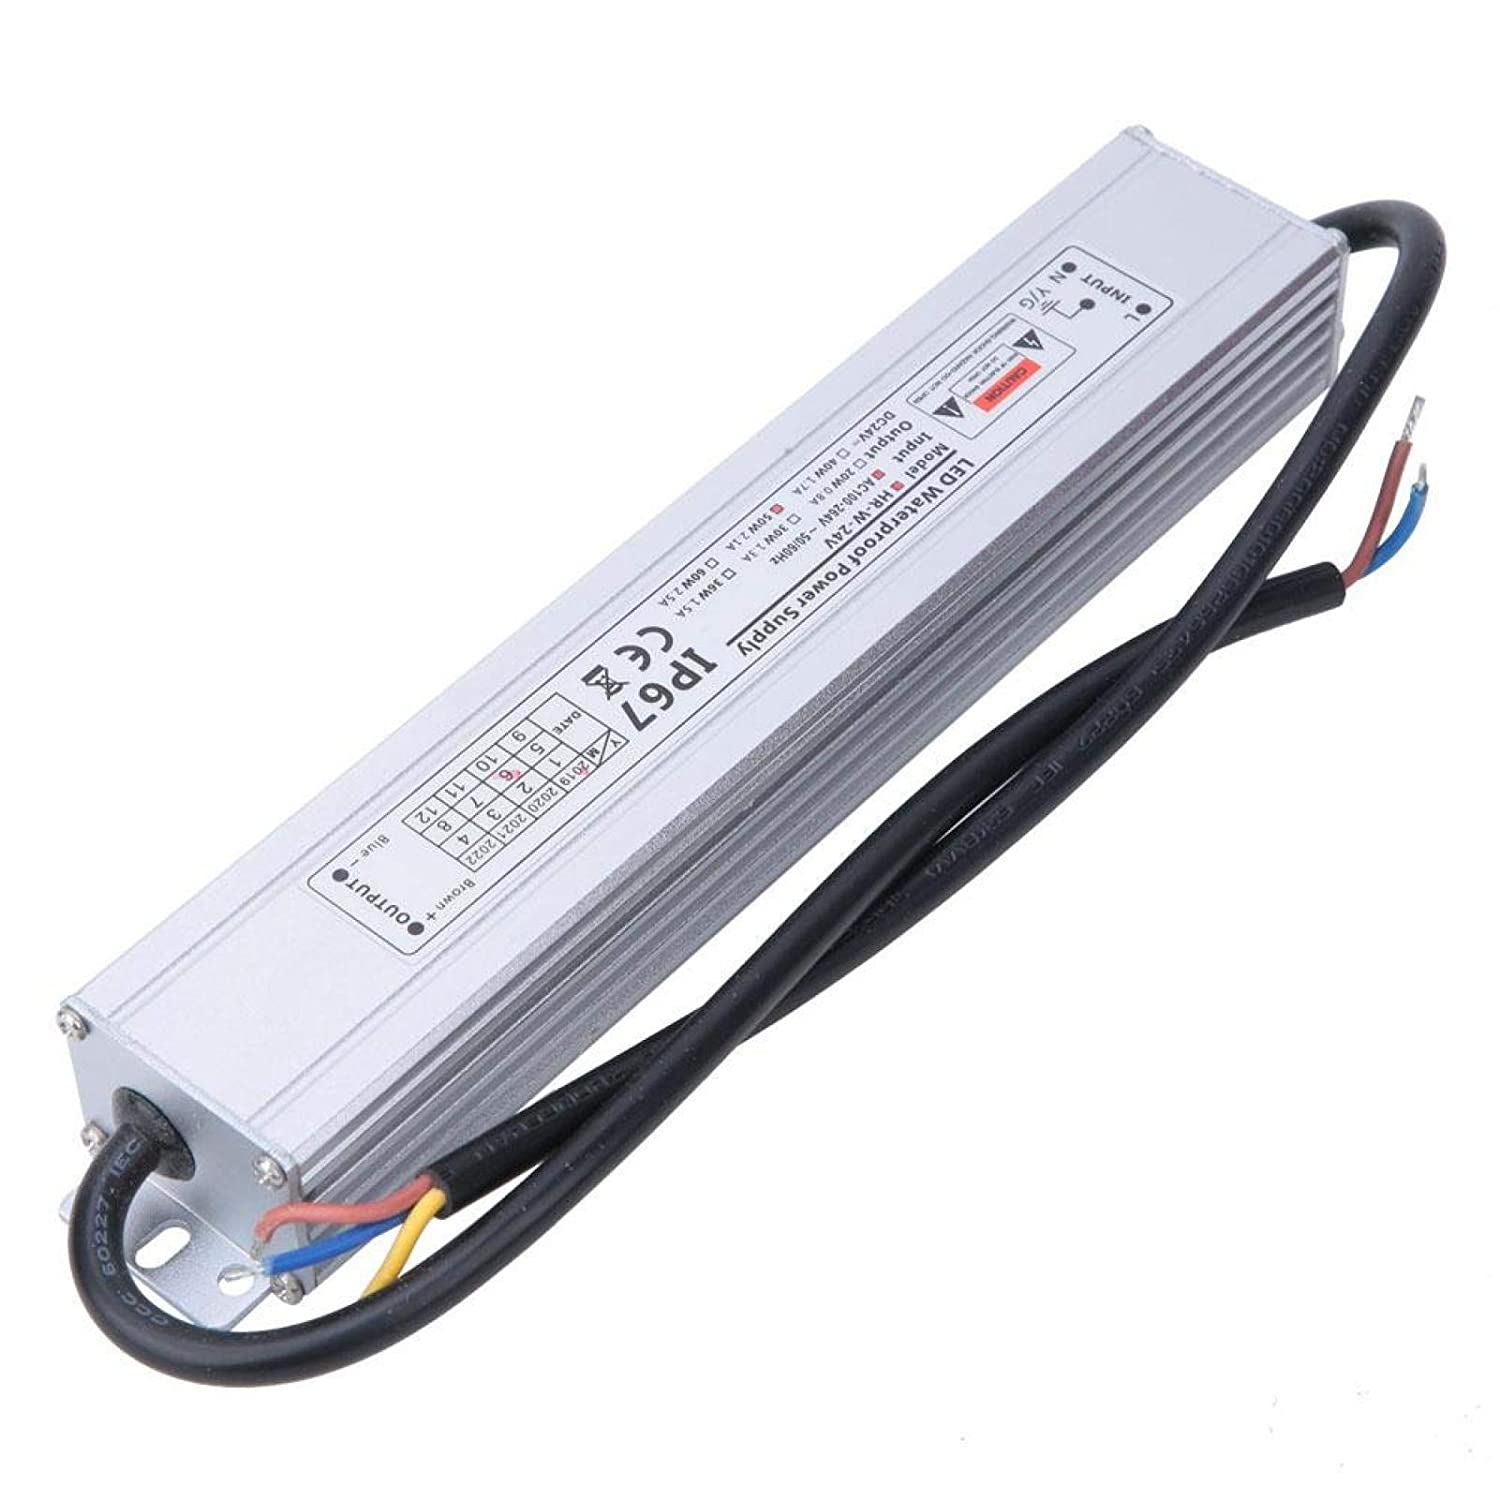 Power Supply Gifts LED Indianapolis Mall Regulator IP67 Waterproof Voltag